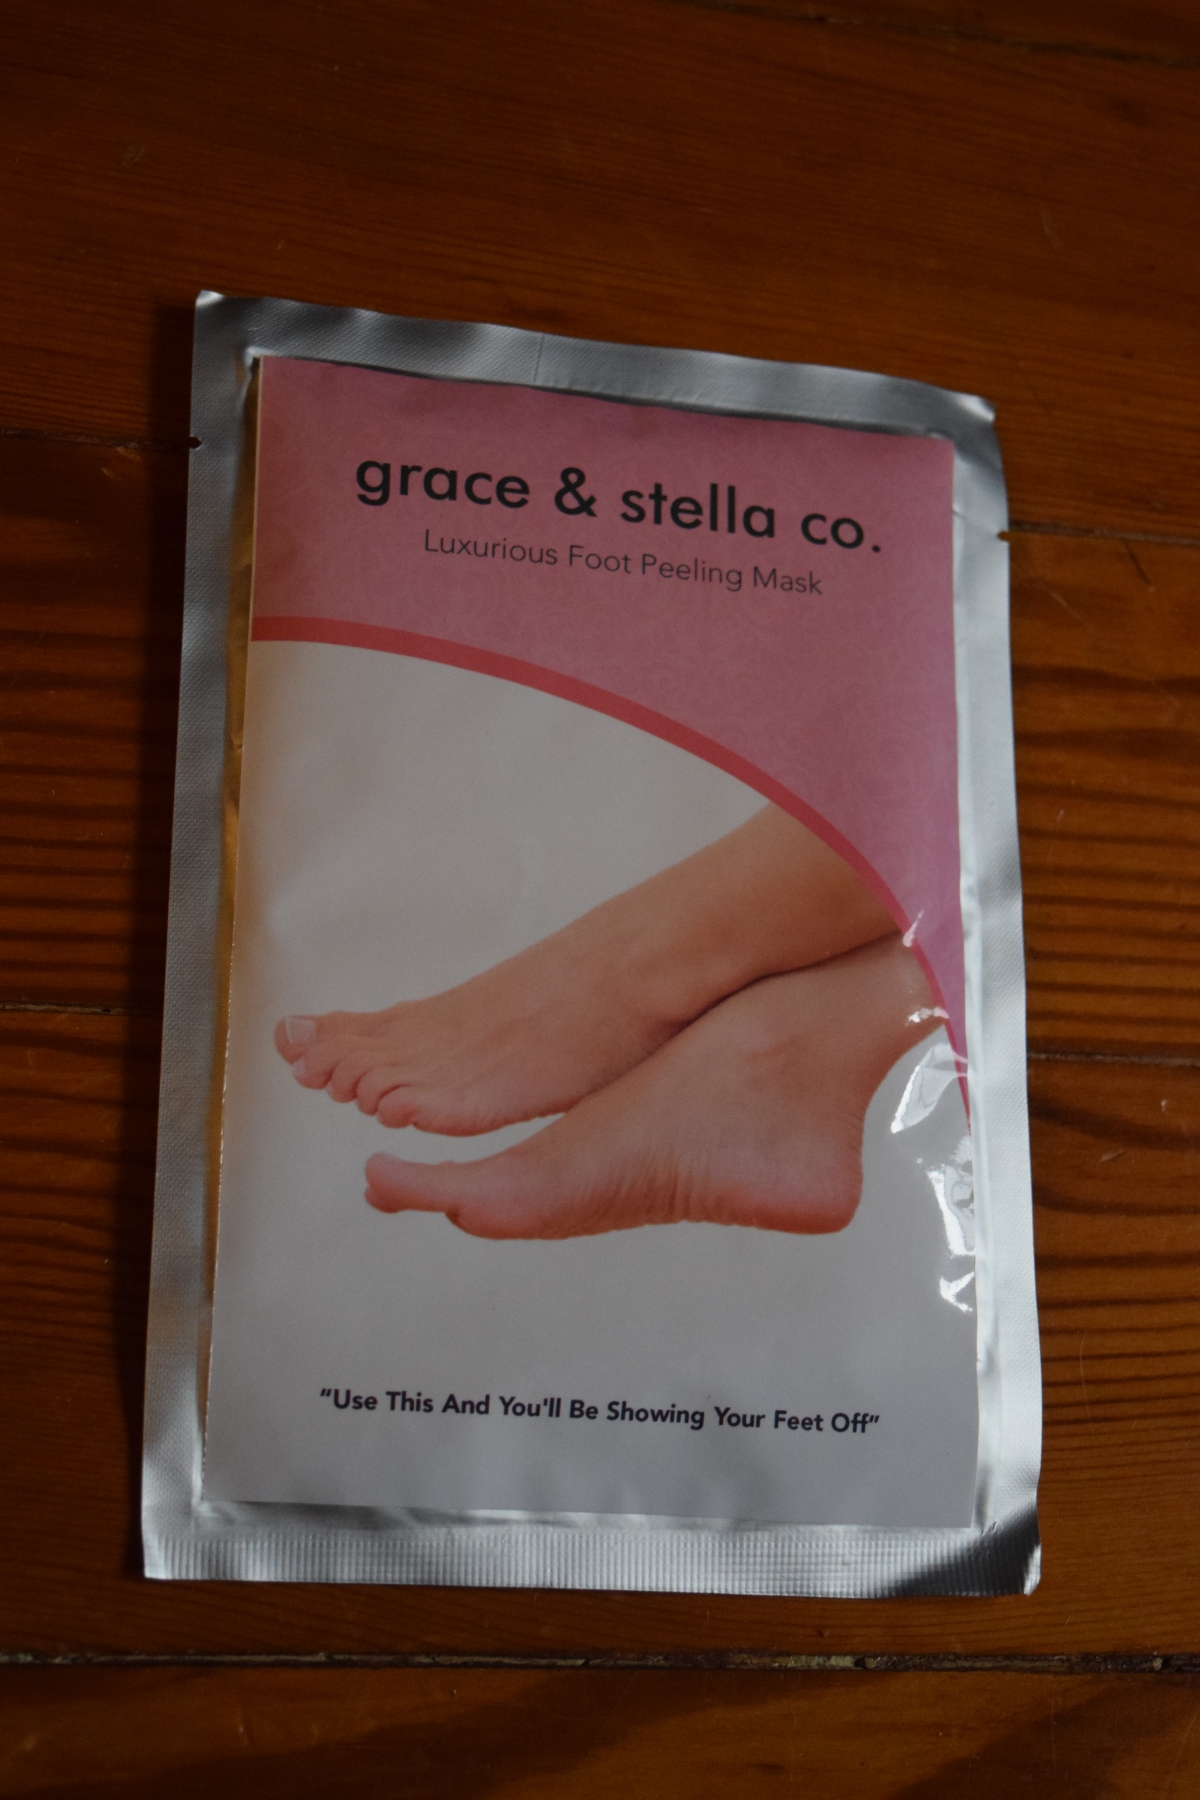 June Product Review: Grace & Stella Co. Luxurious Foot Peeling Mask & 60% OffCoupon